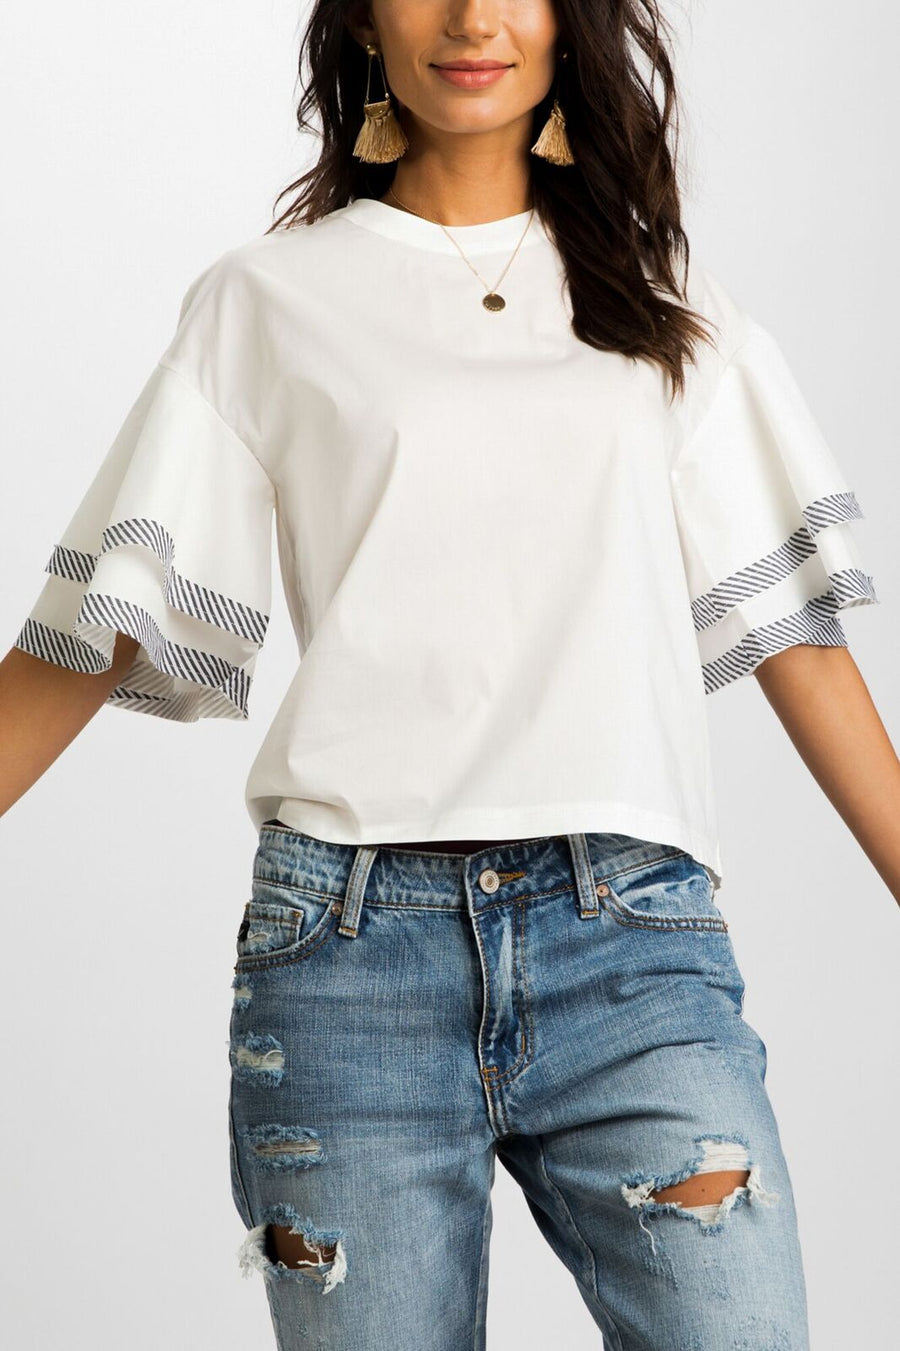 State Your Name Bell Sleeve Top